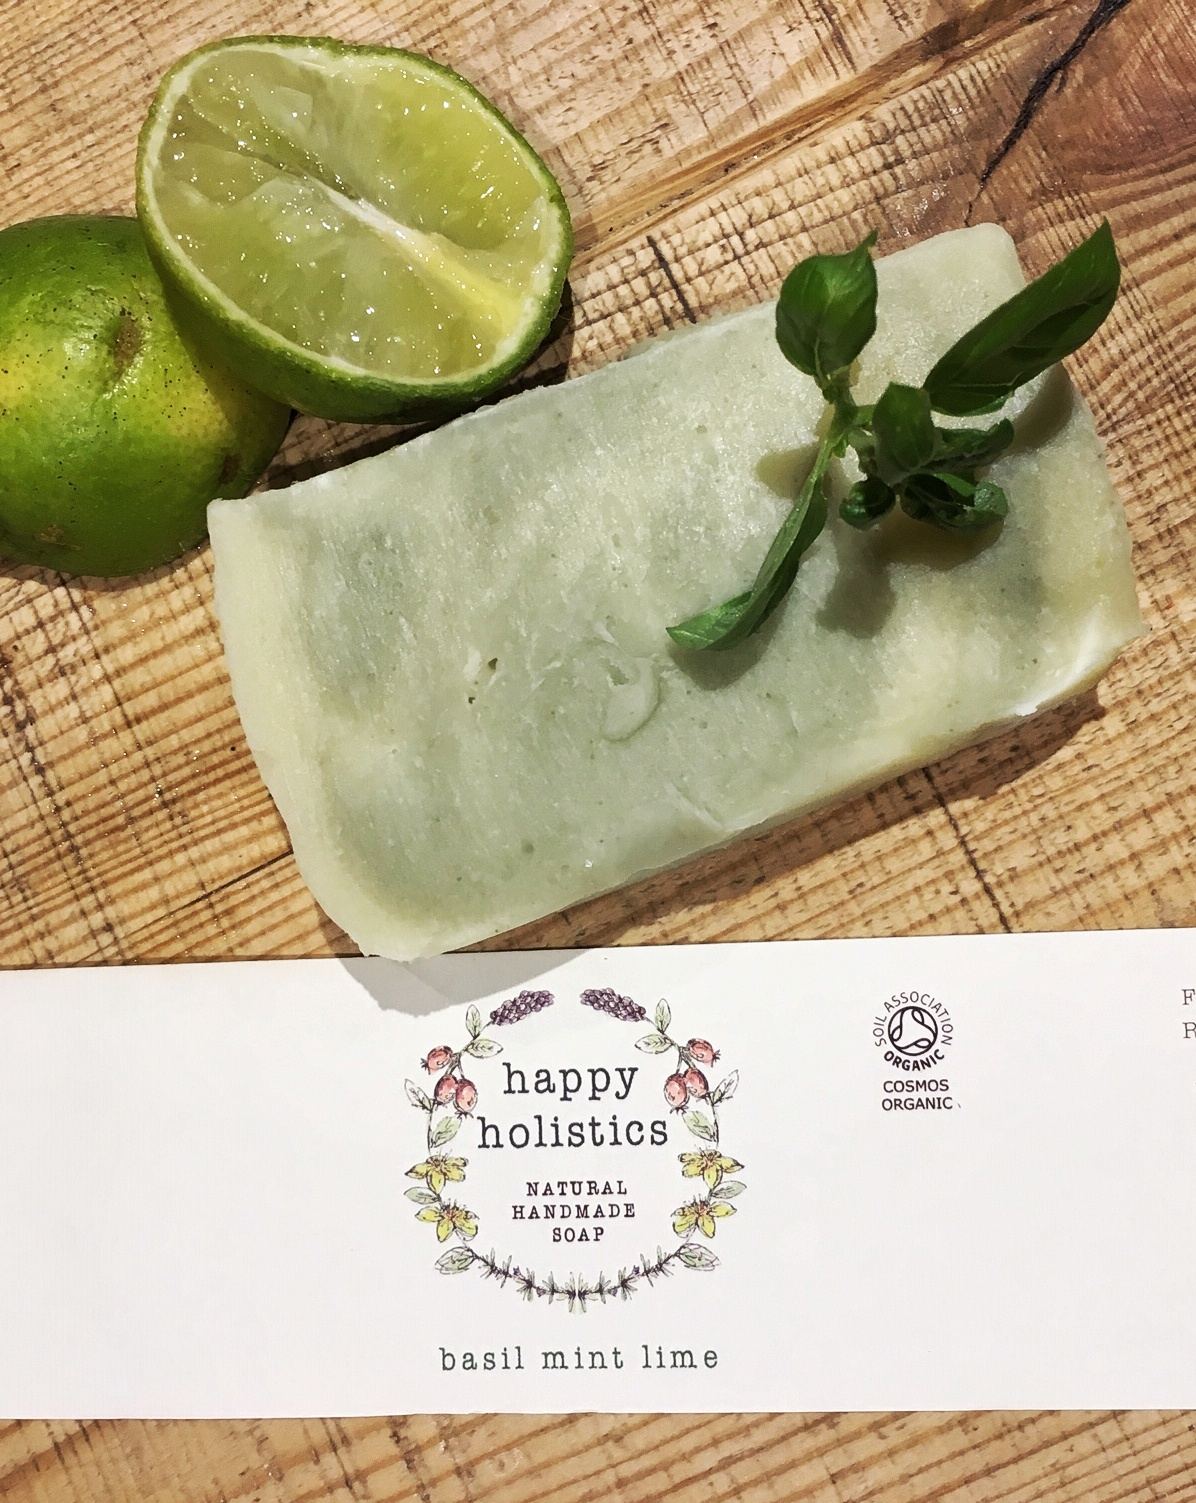 Beginners' Soap Making Workshop